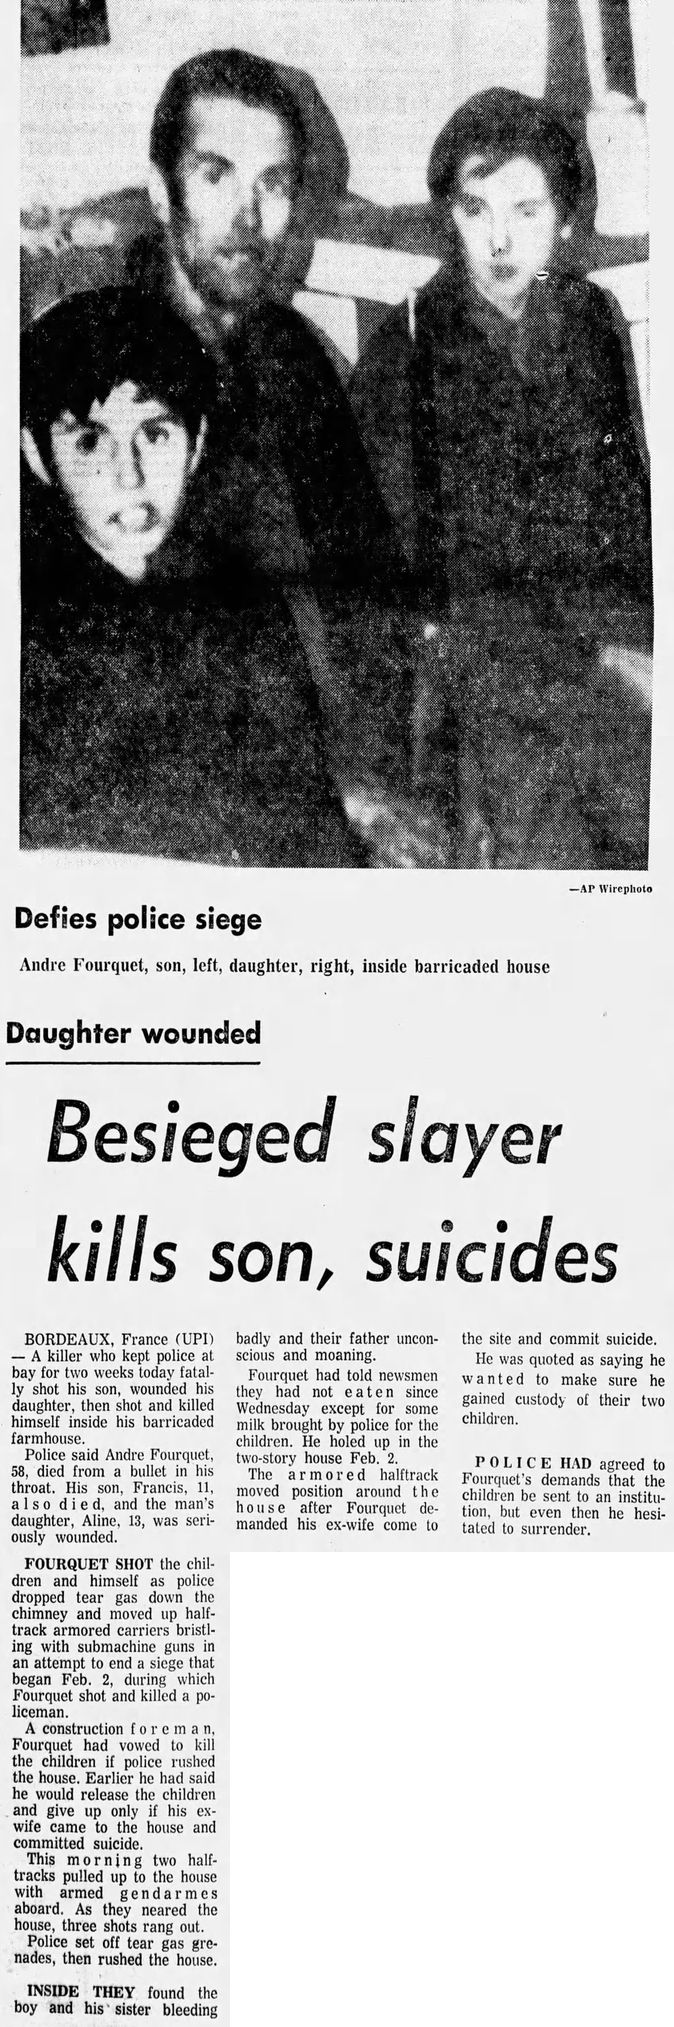 The Tampa Times, nº 9, 17/09/1969, p. 1